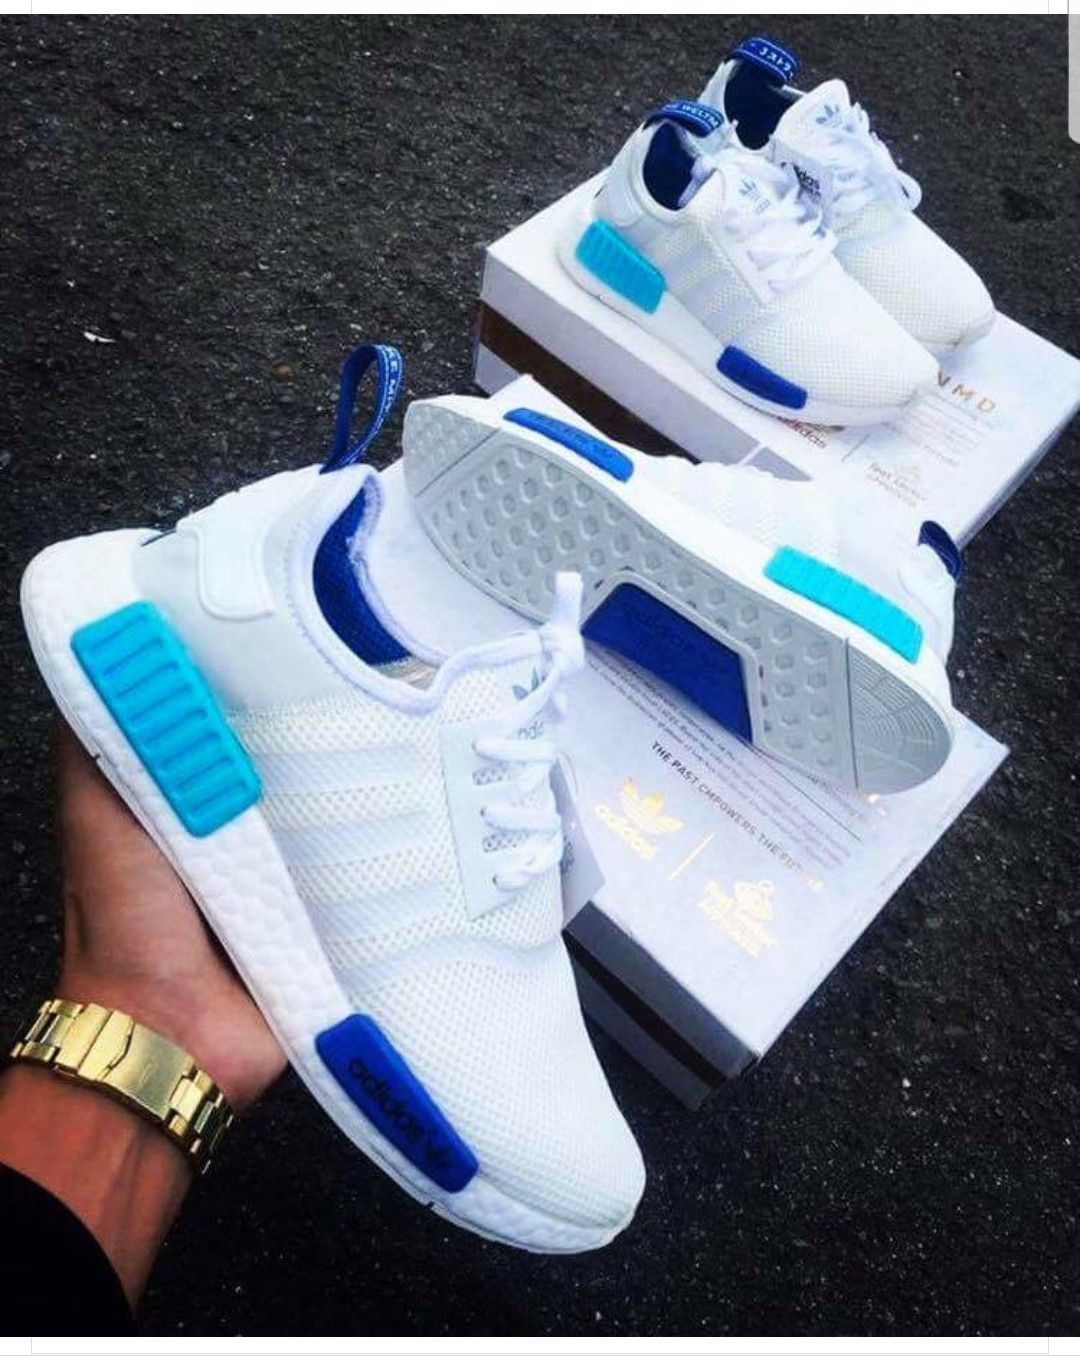 969b53ba4c494 adidas  shoes Adidas NMD R1 White Blue Glow